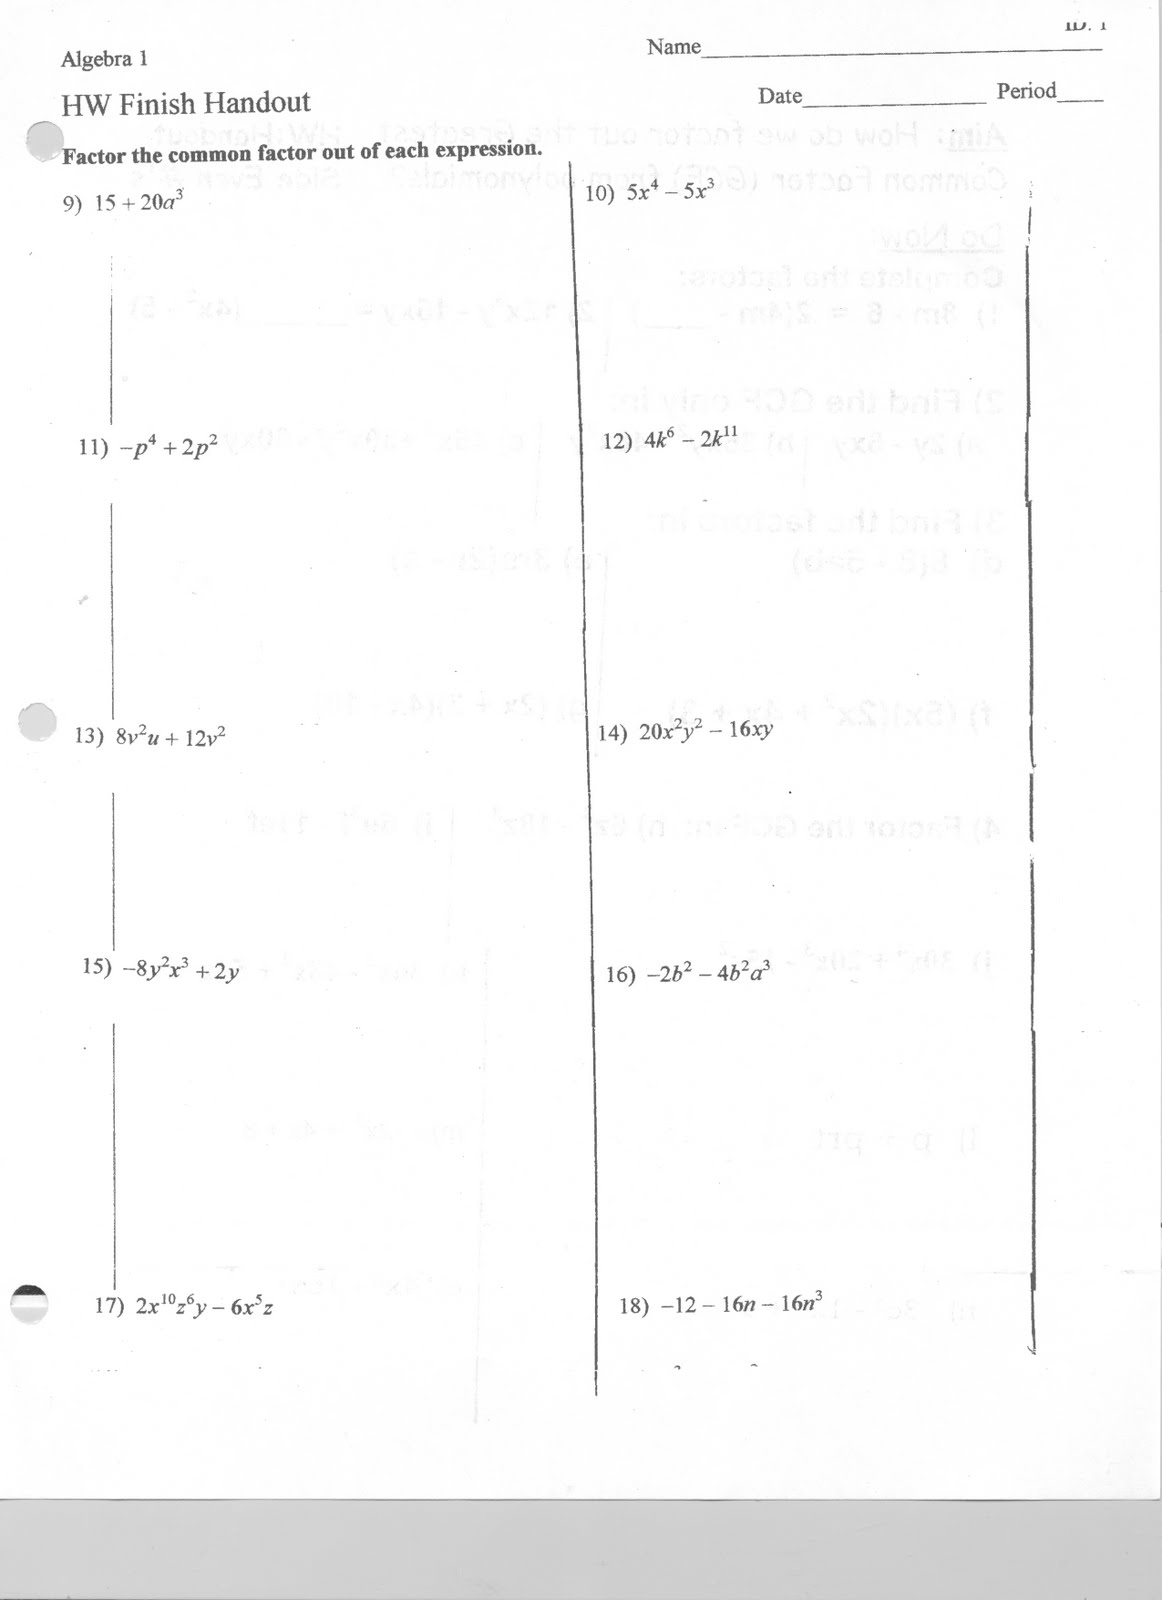 Multiplying And Dividing Polynomials Worksheet Pdf long and – Long Division Polynomials Worksheet